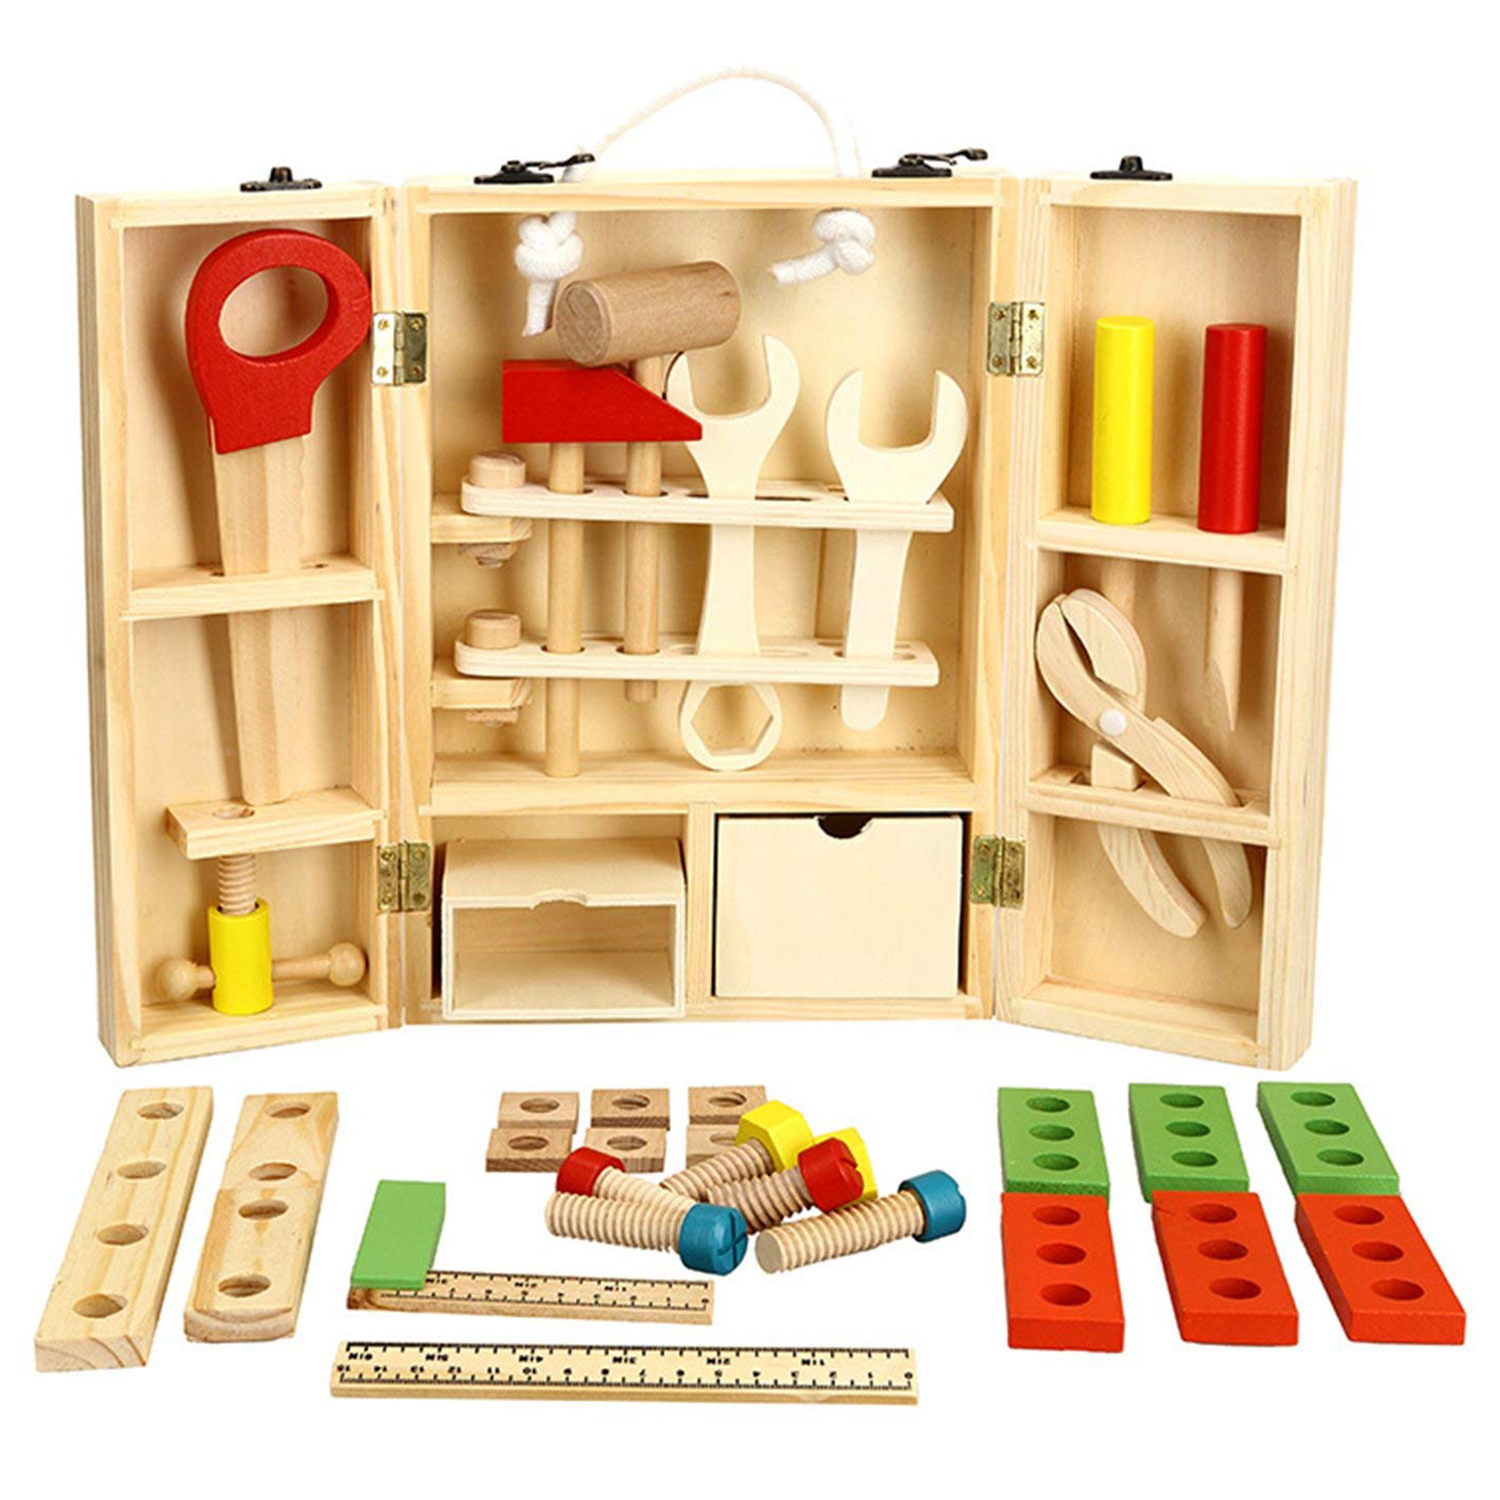 WOTT Wooden Tool Toys Pretend Play Tool box Accessories Set Educational Construction Toys Kids Инструмент